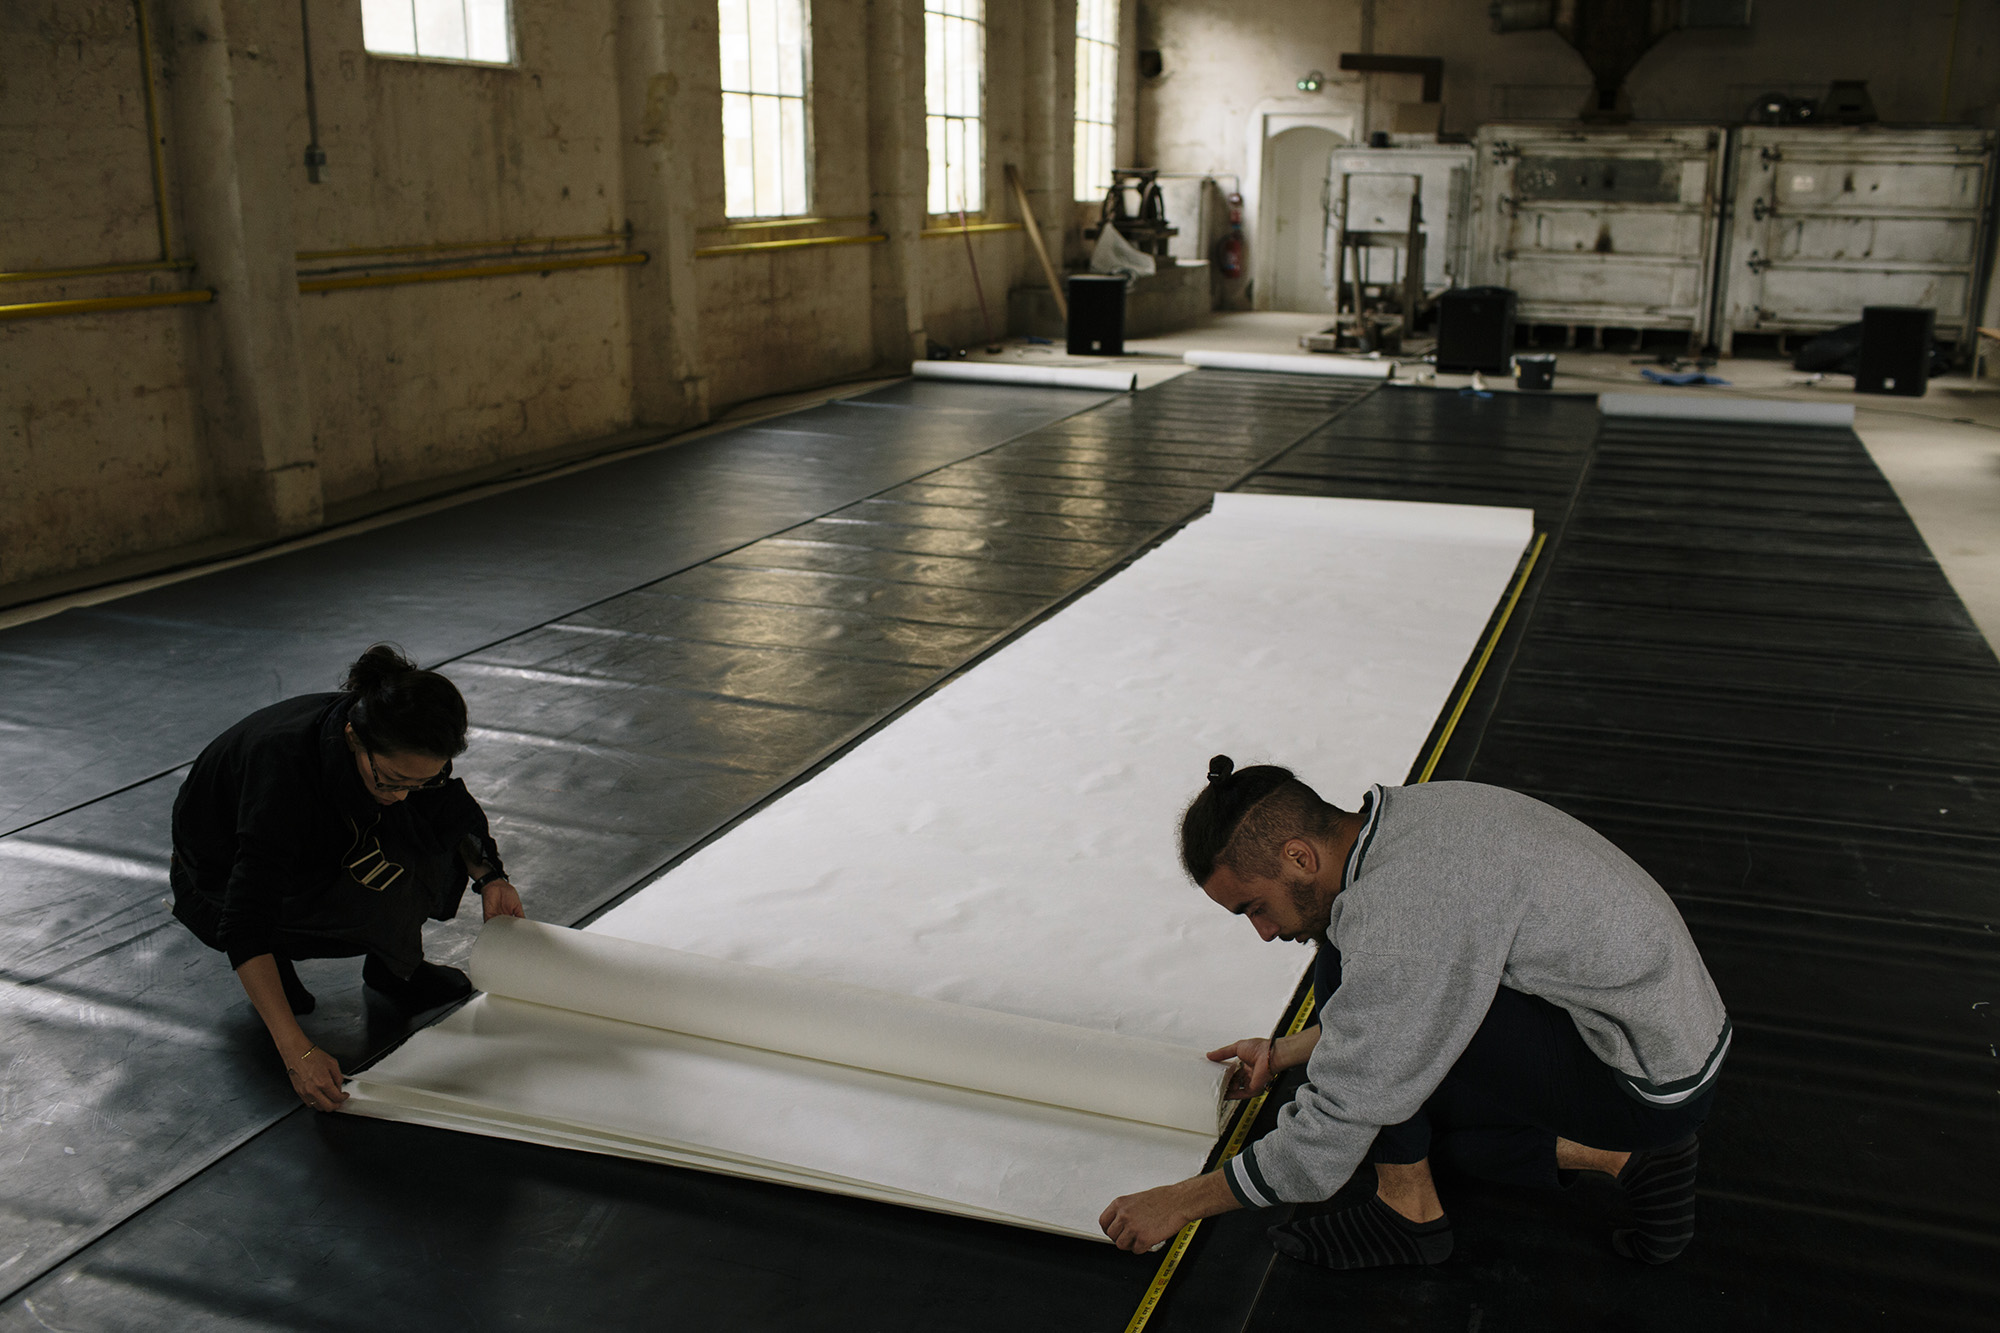 Aoi & Farid preparing the paper _ photo by Corey Fuller